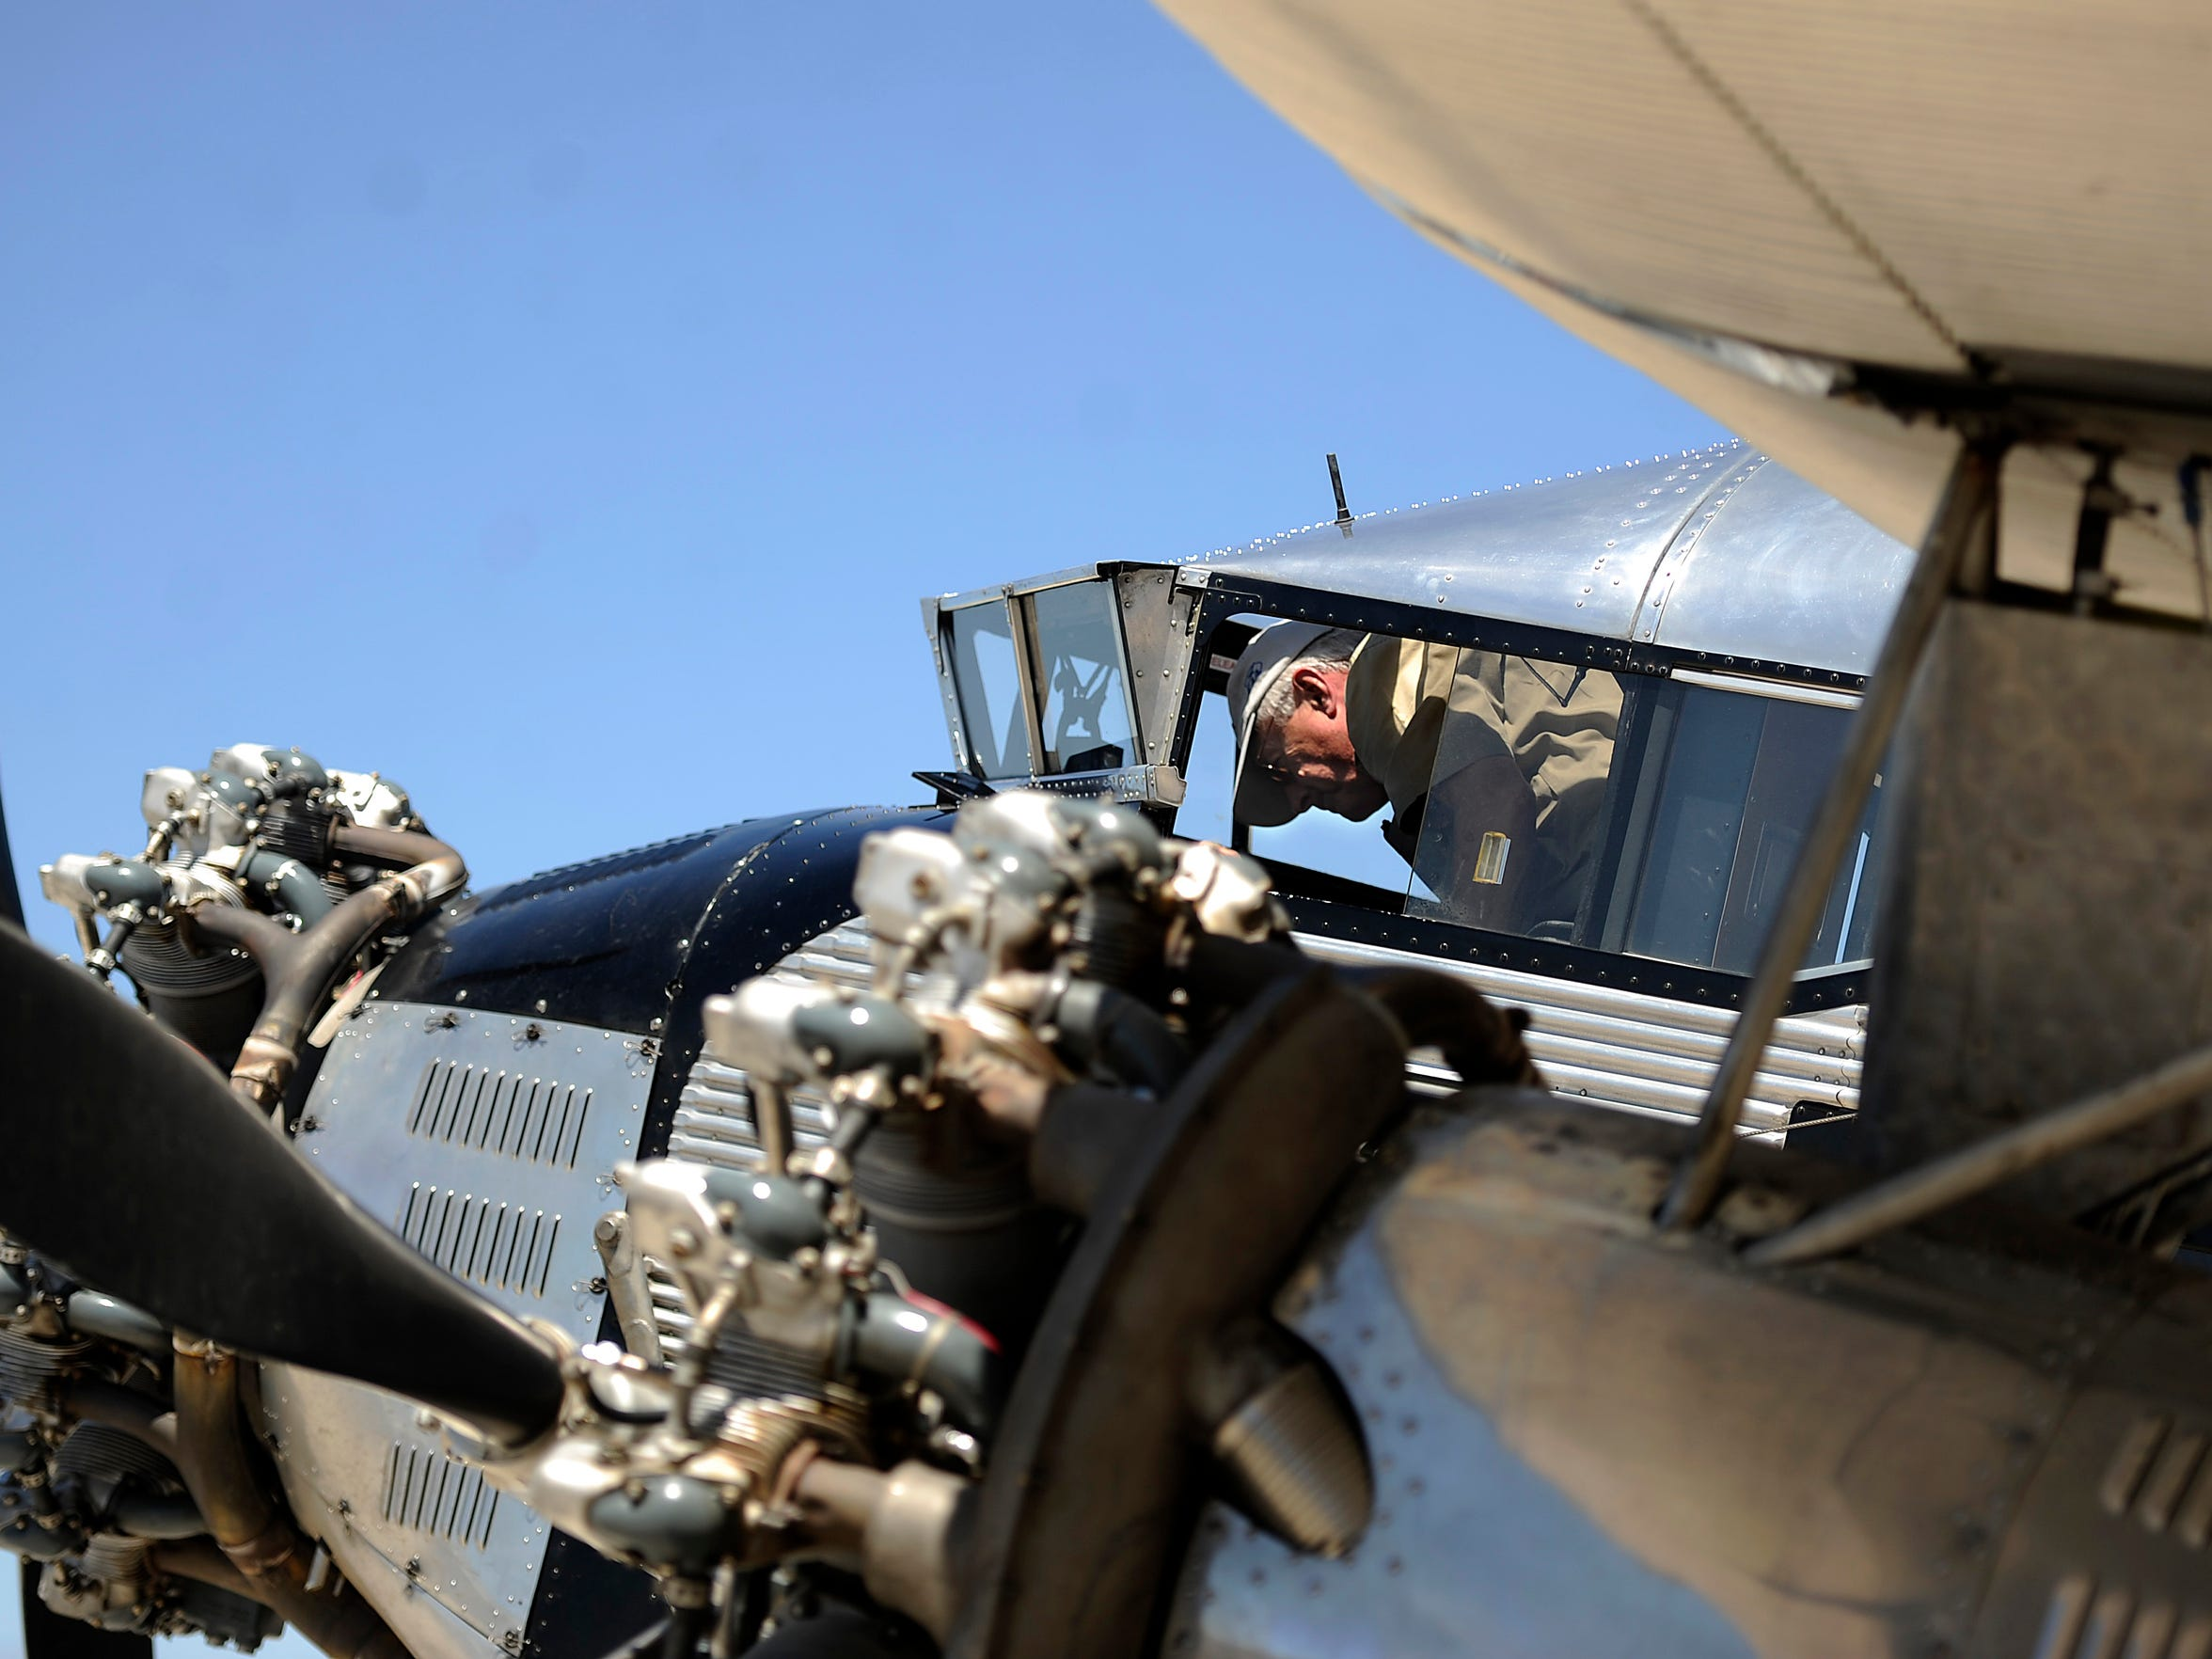 Pilot Bill Sleeper climbs into the cockpit of a 1928 Ford Tri-Motor airplane on Thursday, May 4, 2017, at the Abilene Regional Airport.